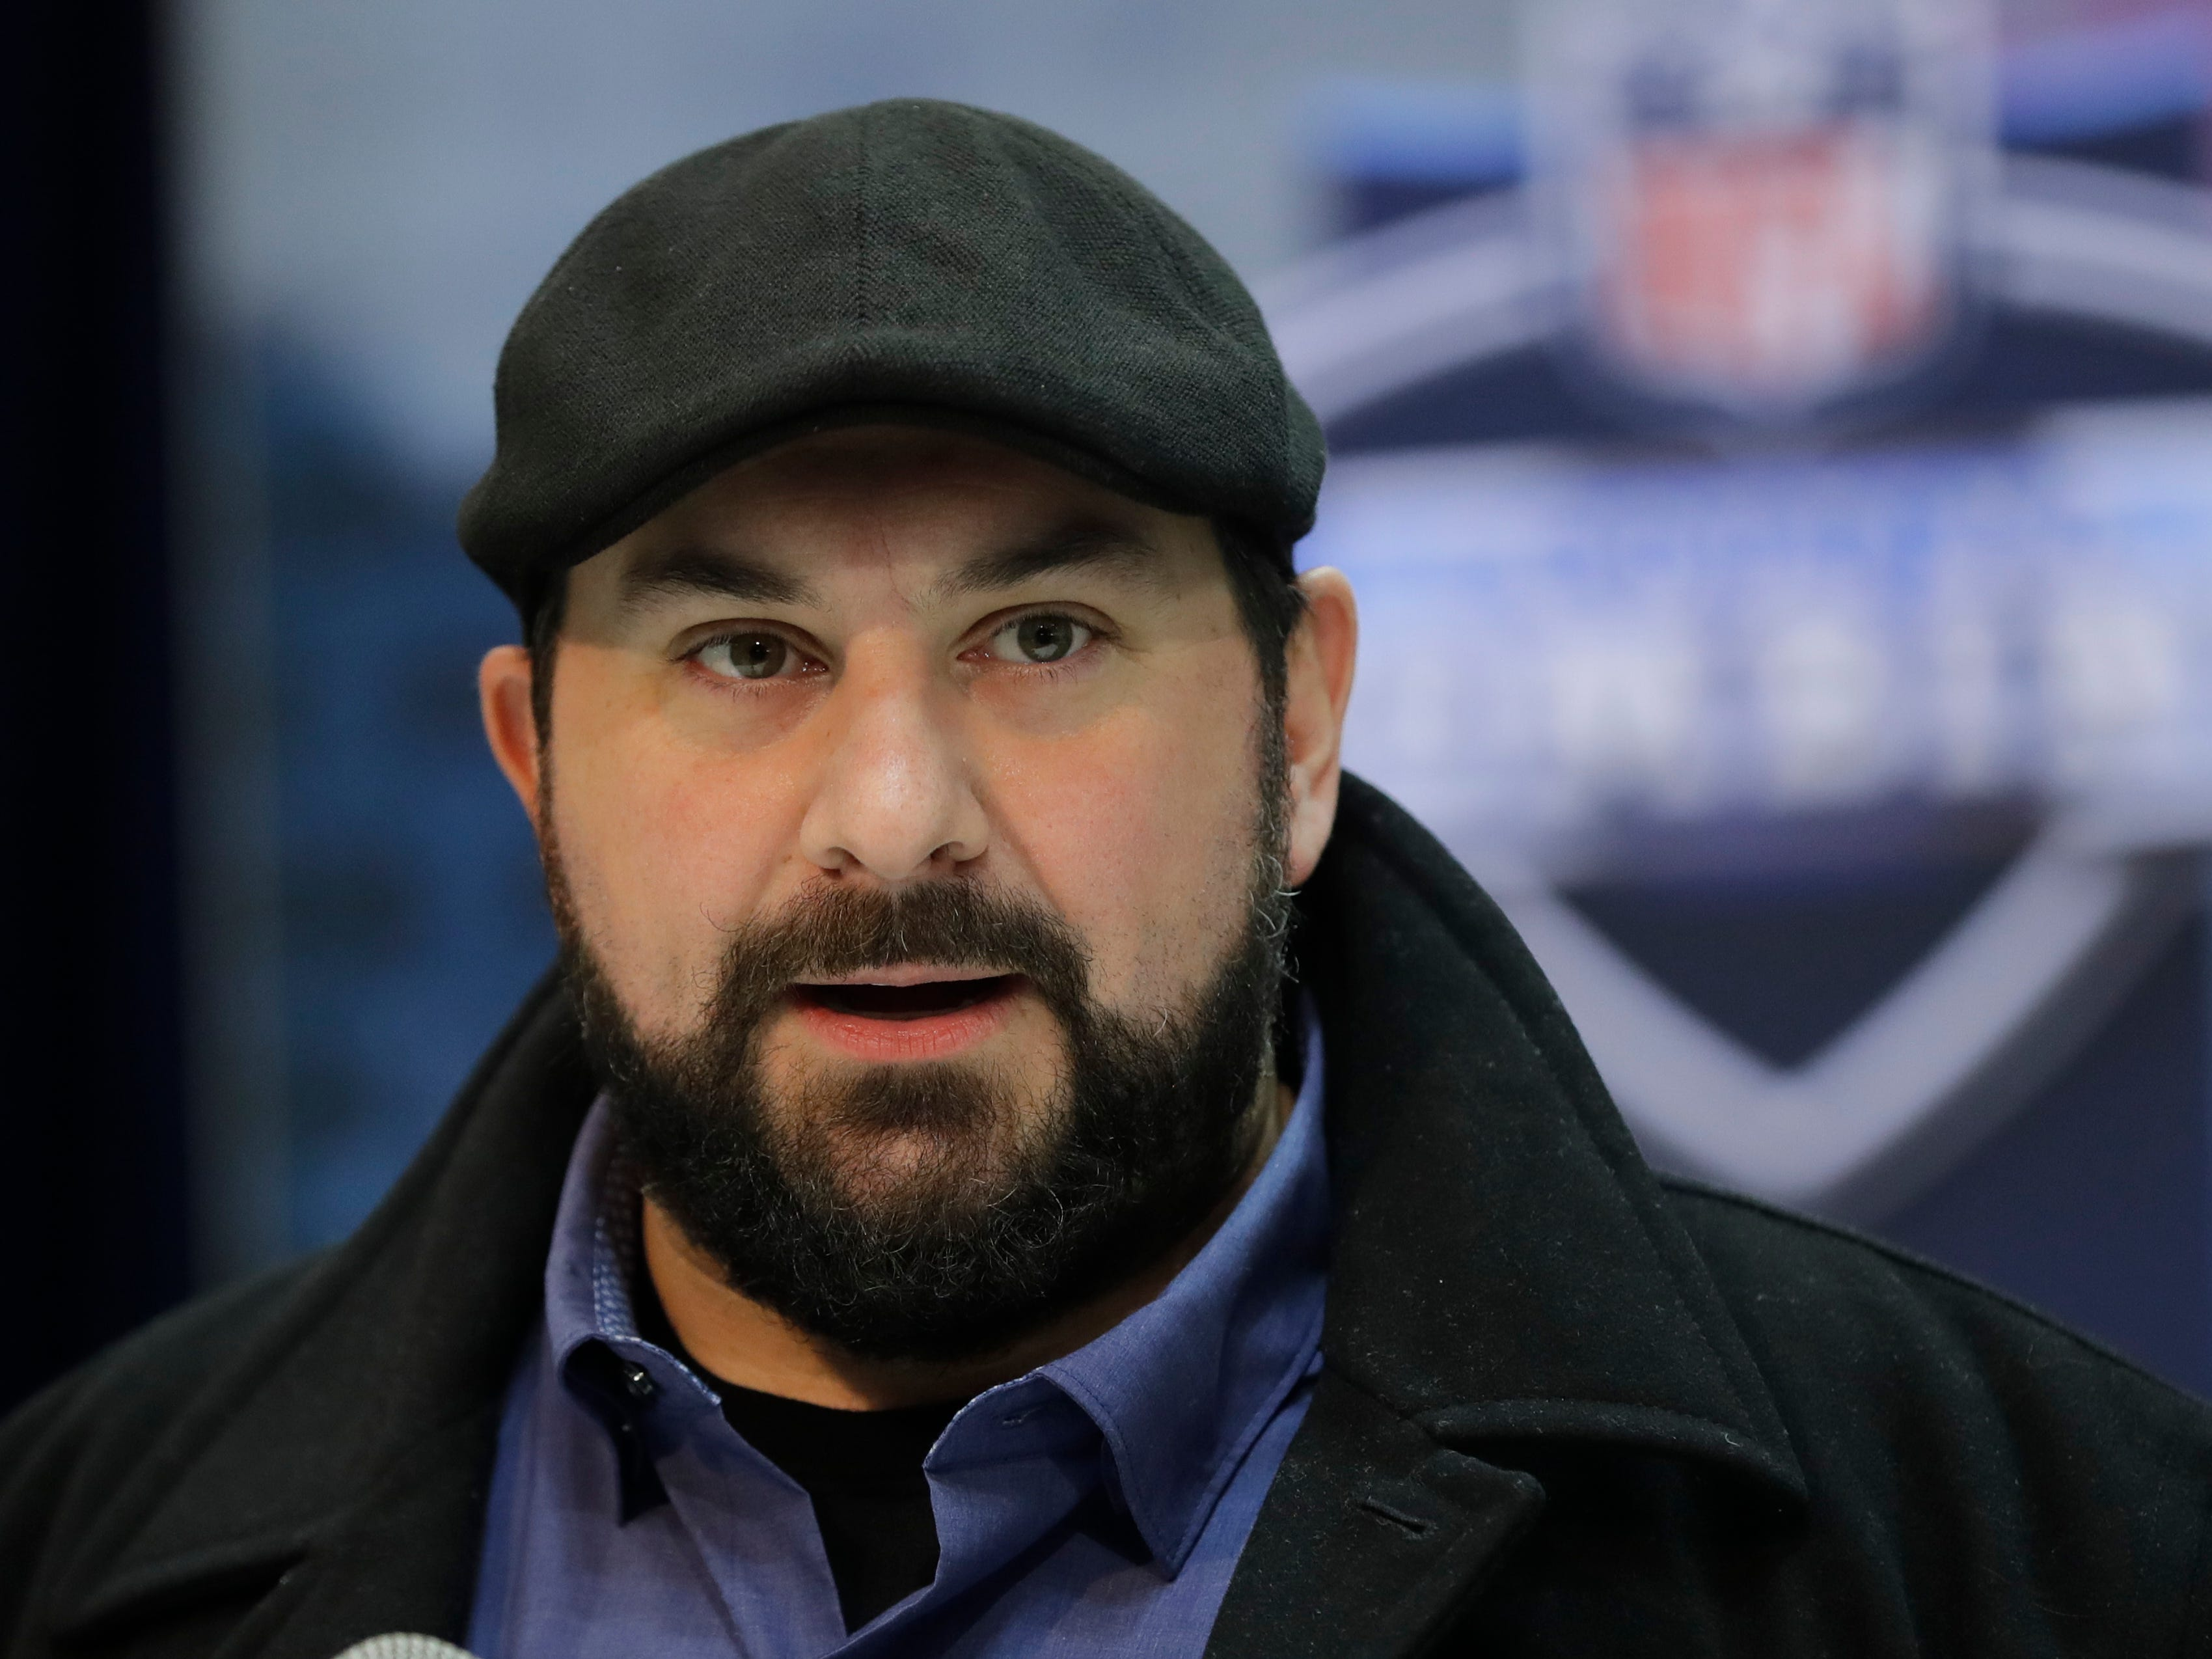 Detroit Lions should draft anything but TE in Round 1 of NFL draft | Opinion